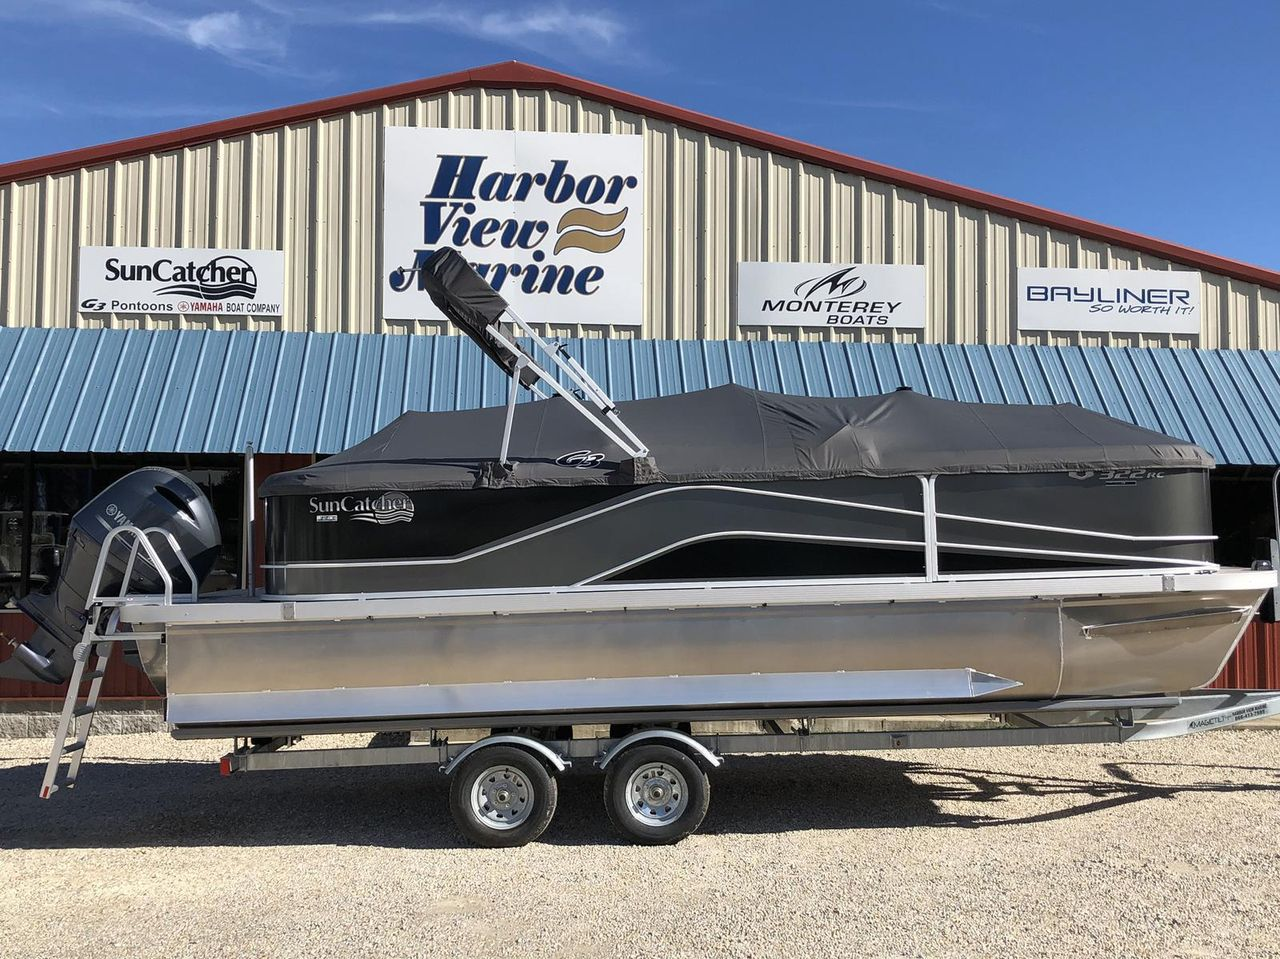 2019 New G3 V 322 Rcv 322 Rc Pontoon Boat For Sale 46279